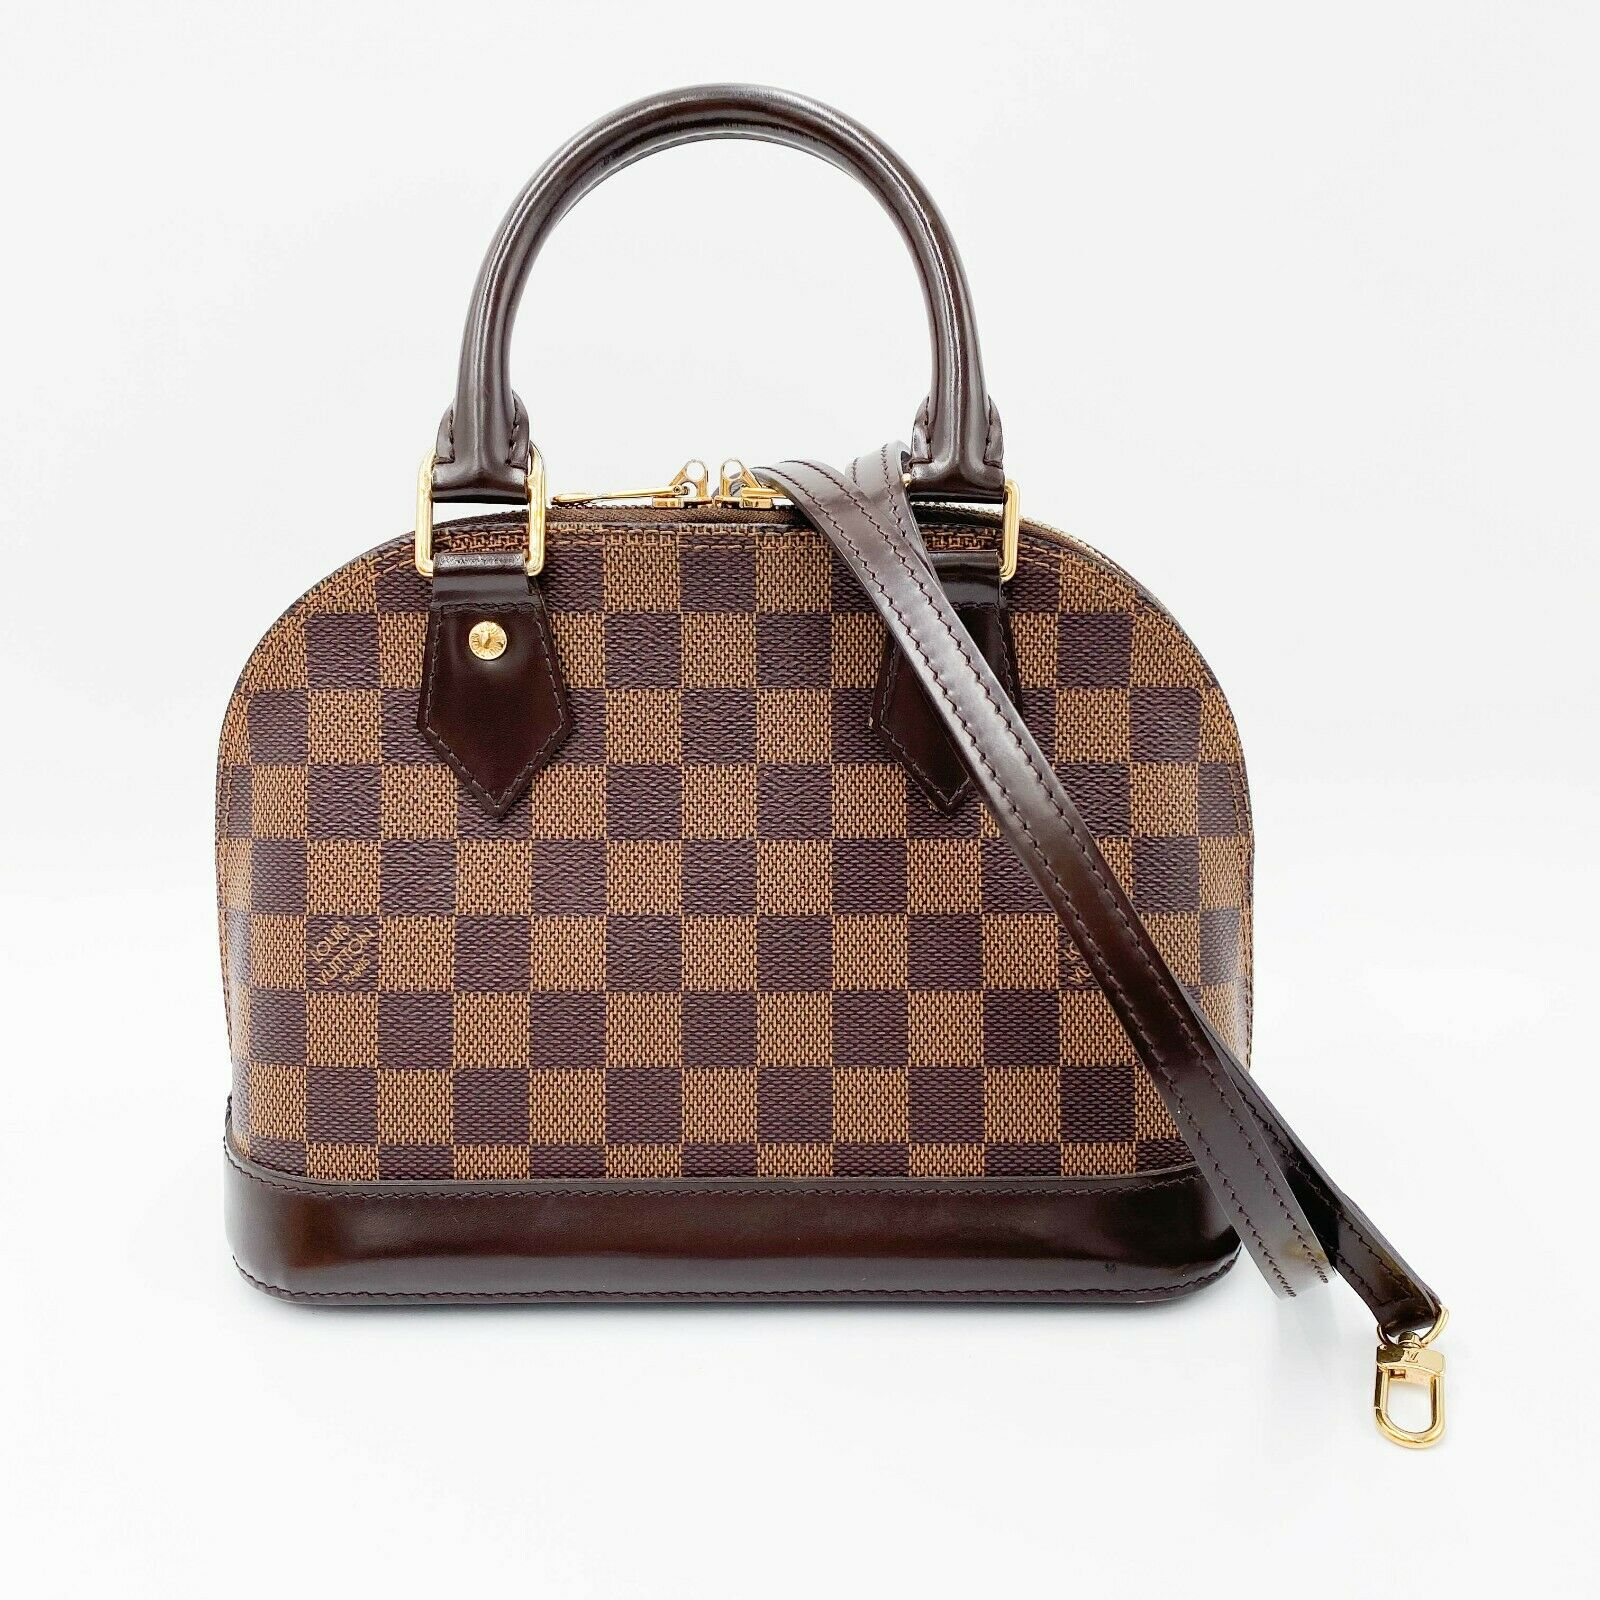 Louis Vuitton Alma Bb Brown Damier Ébène Canvas Shoulder Bag $1800 Crossbody